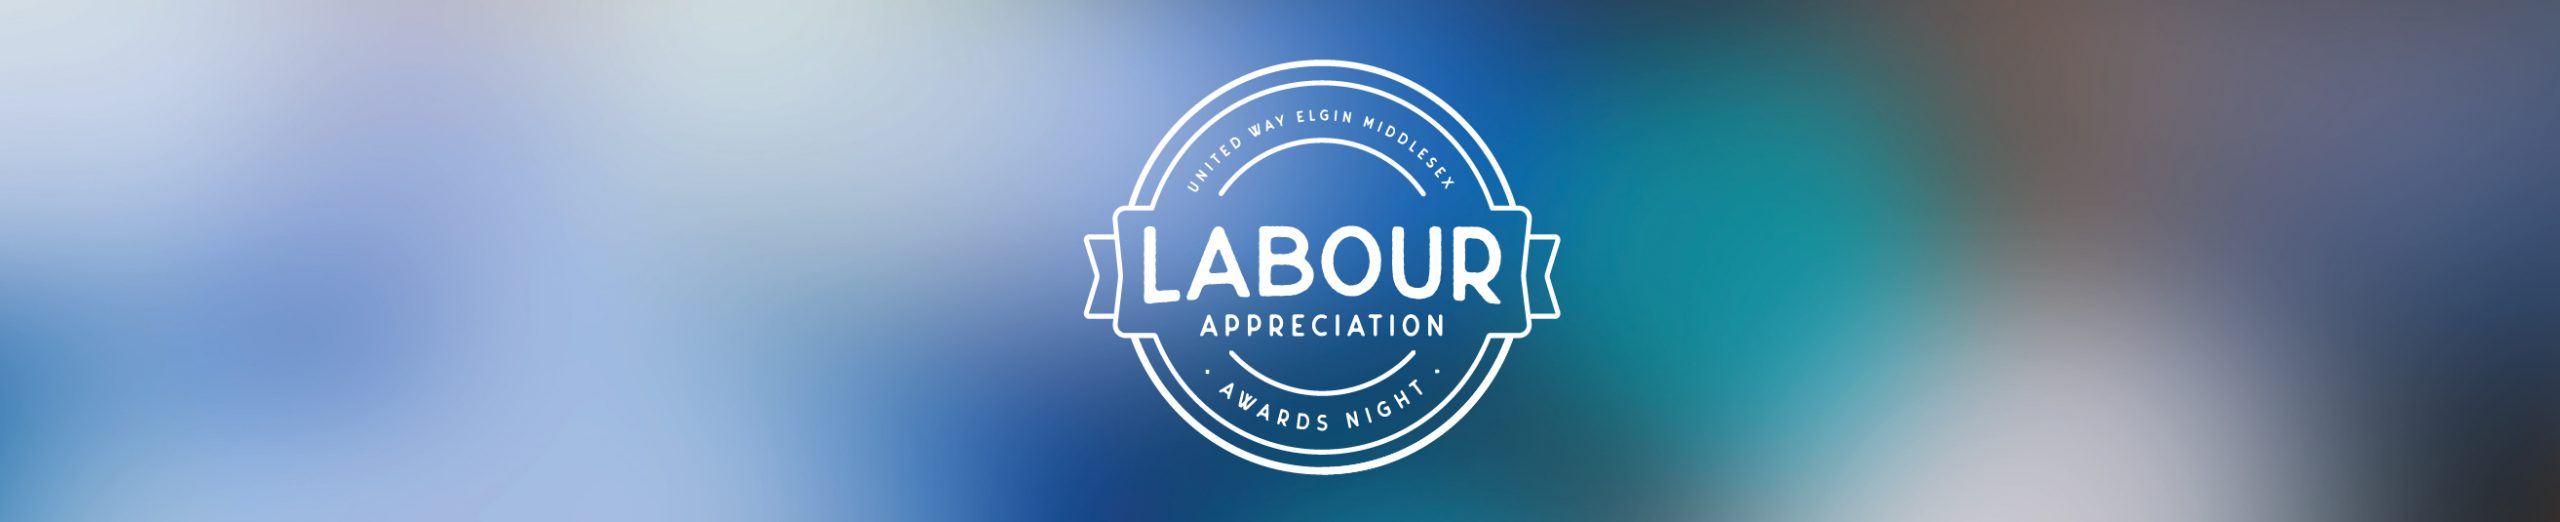 Labour Appreciation Awards Night logo with blurred background